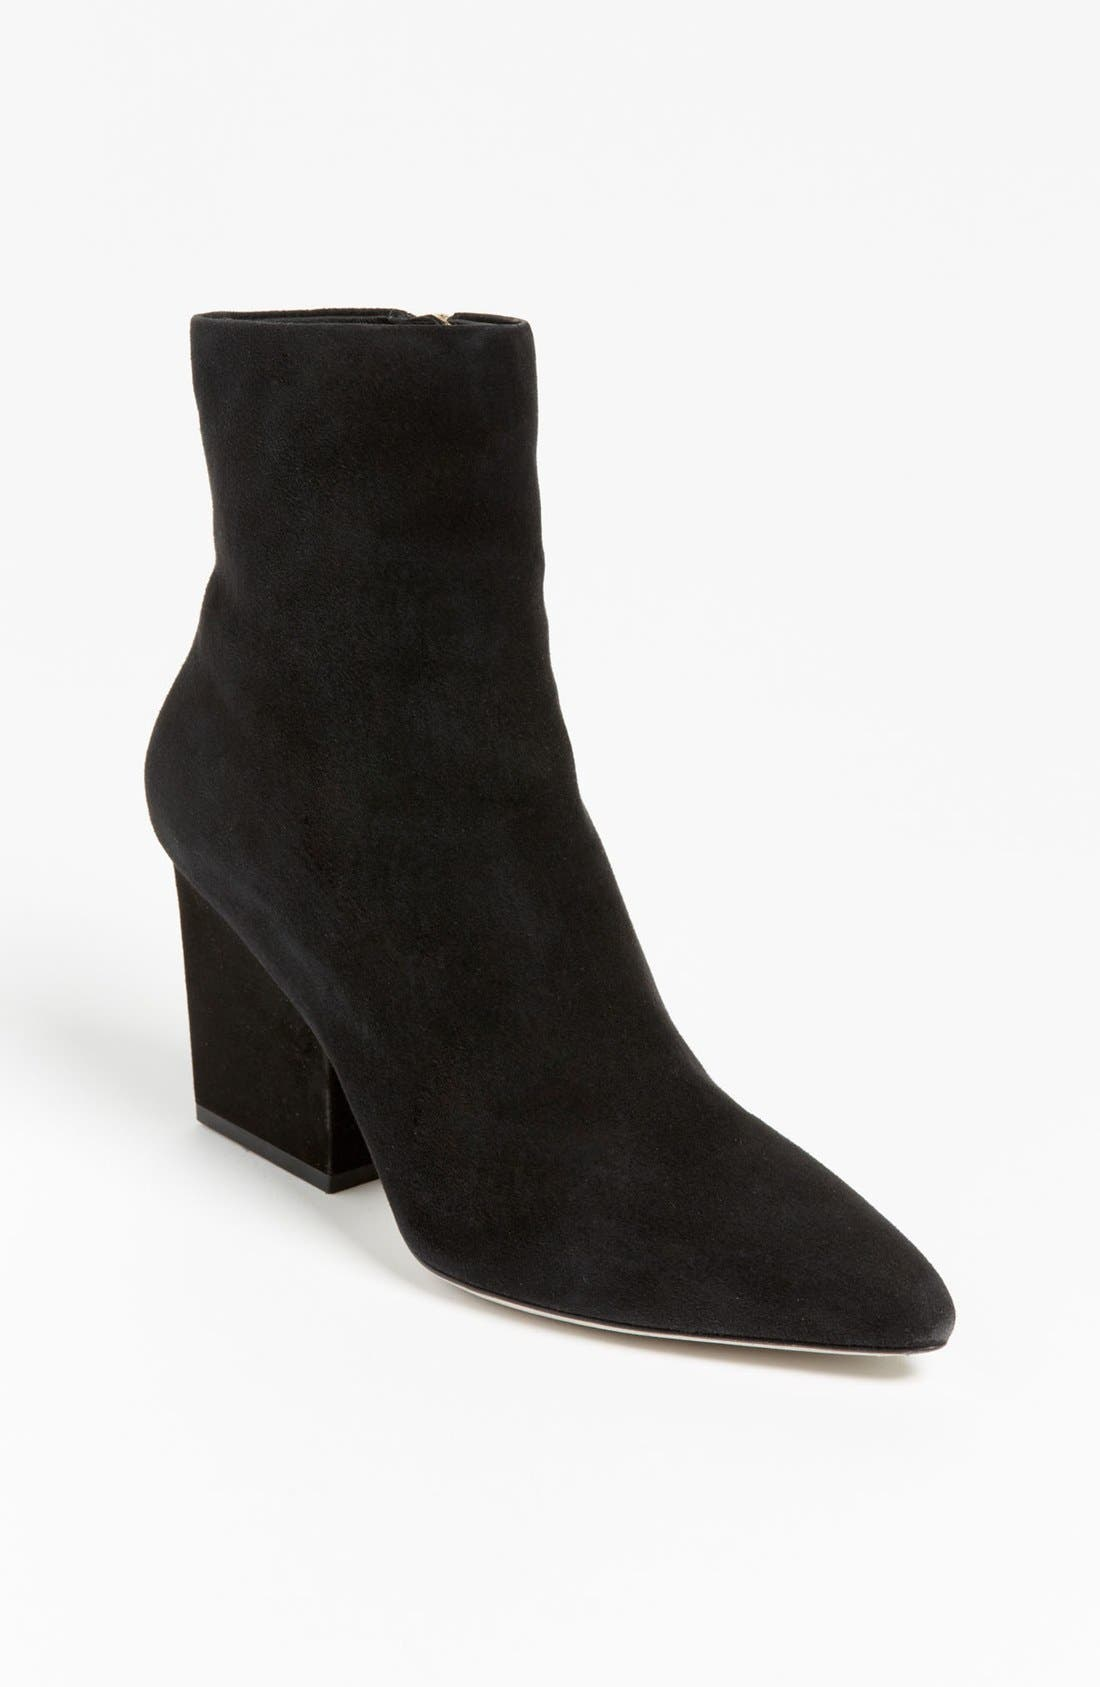 Alternate Image 1 Selected - Alexander Wang 'Sunniva' Bootie